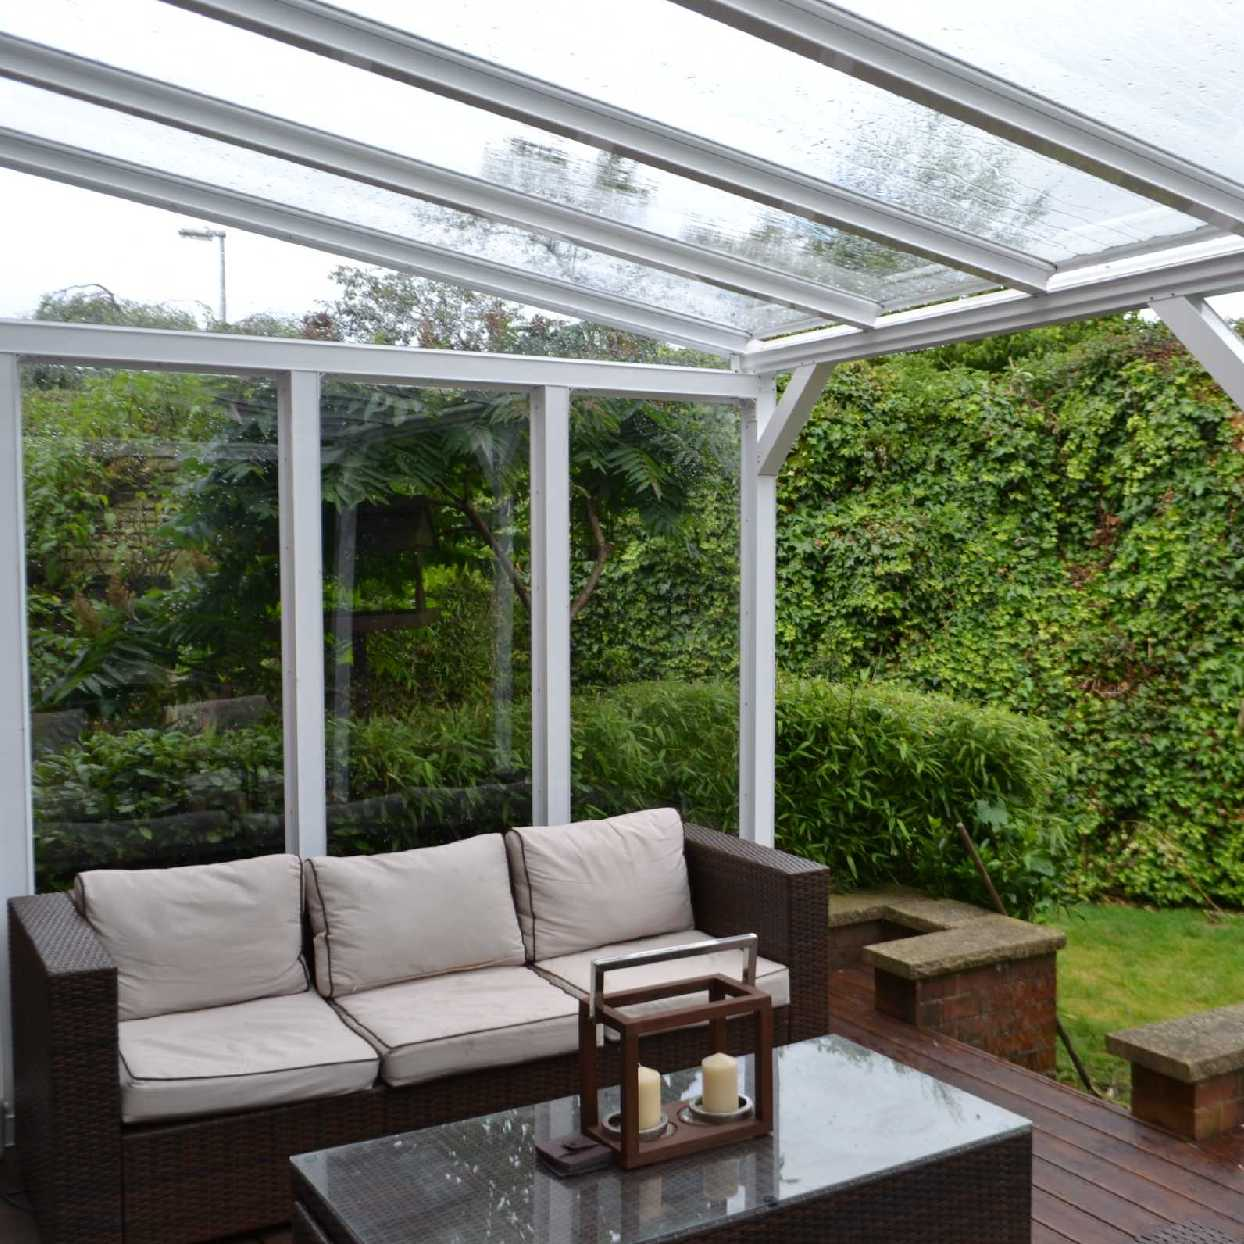 Omega Smart White Lean-To Canopy with 6mm Glass Clear Plate Polycarbonate Glazing - 4.9m (W) x 1.5m (P), (3) Supporting Posts